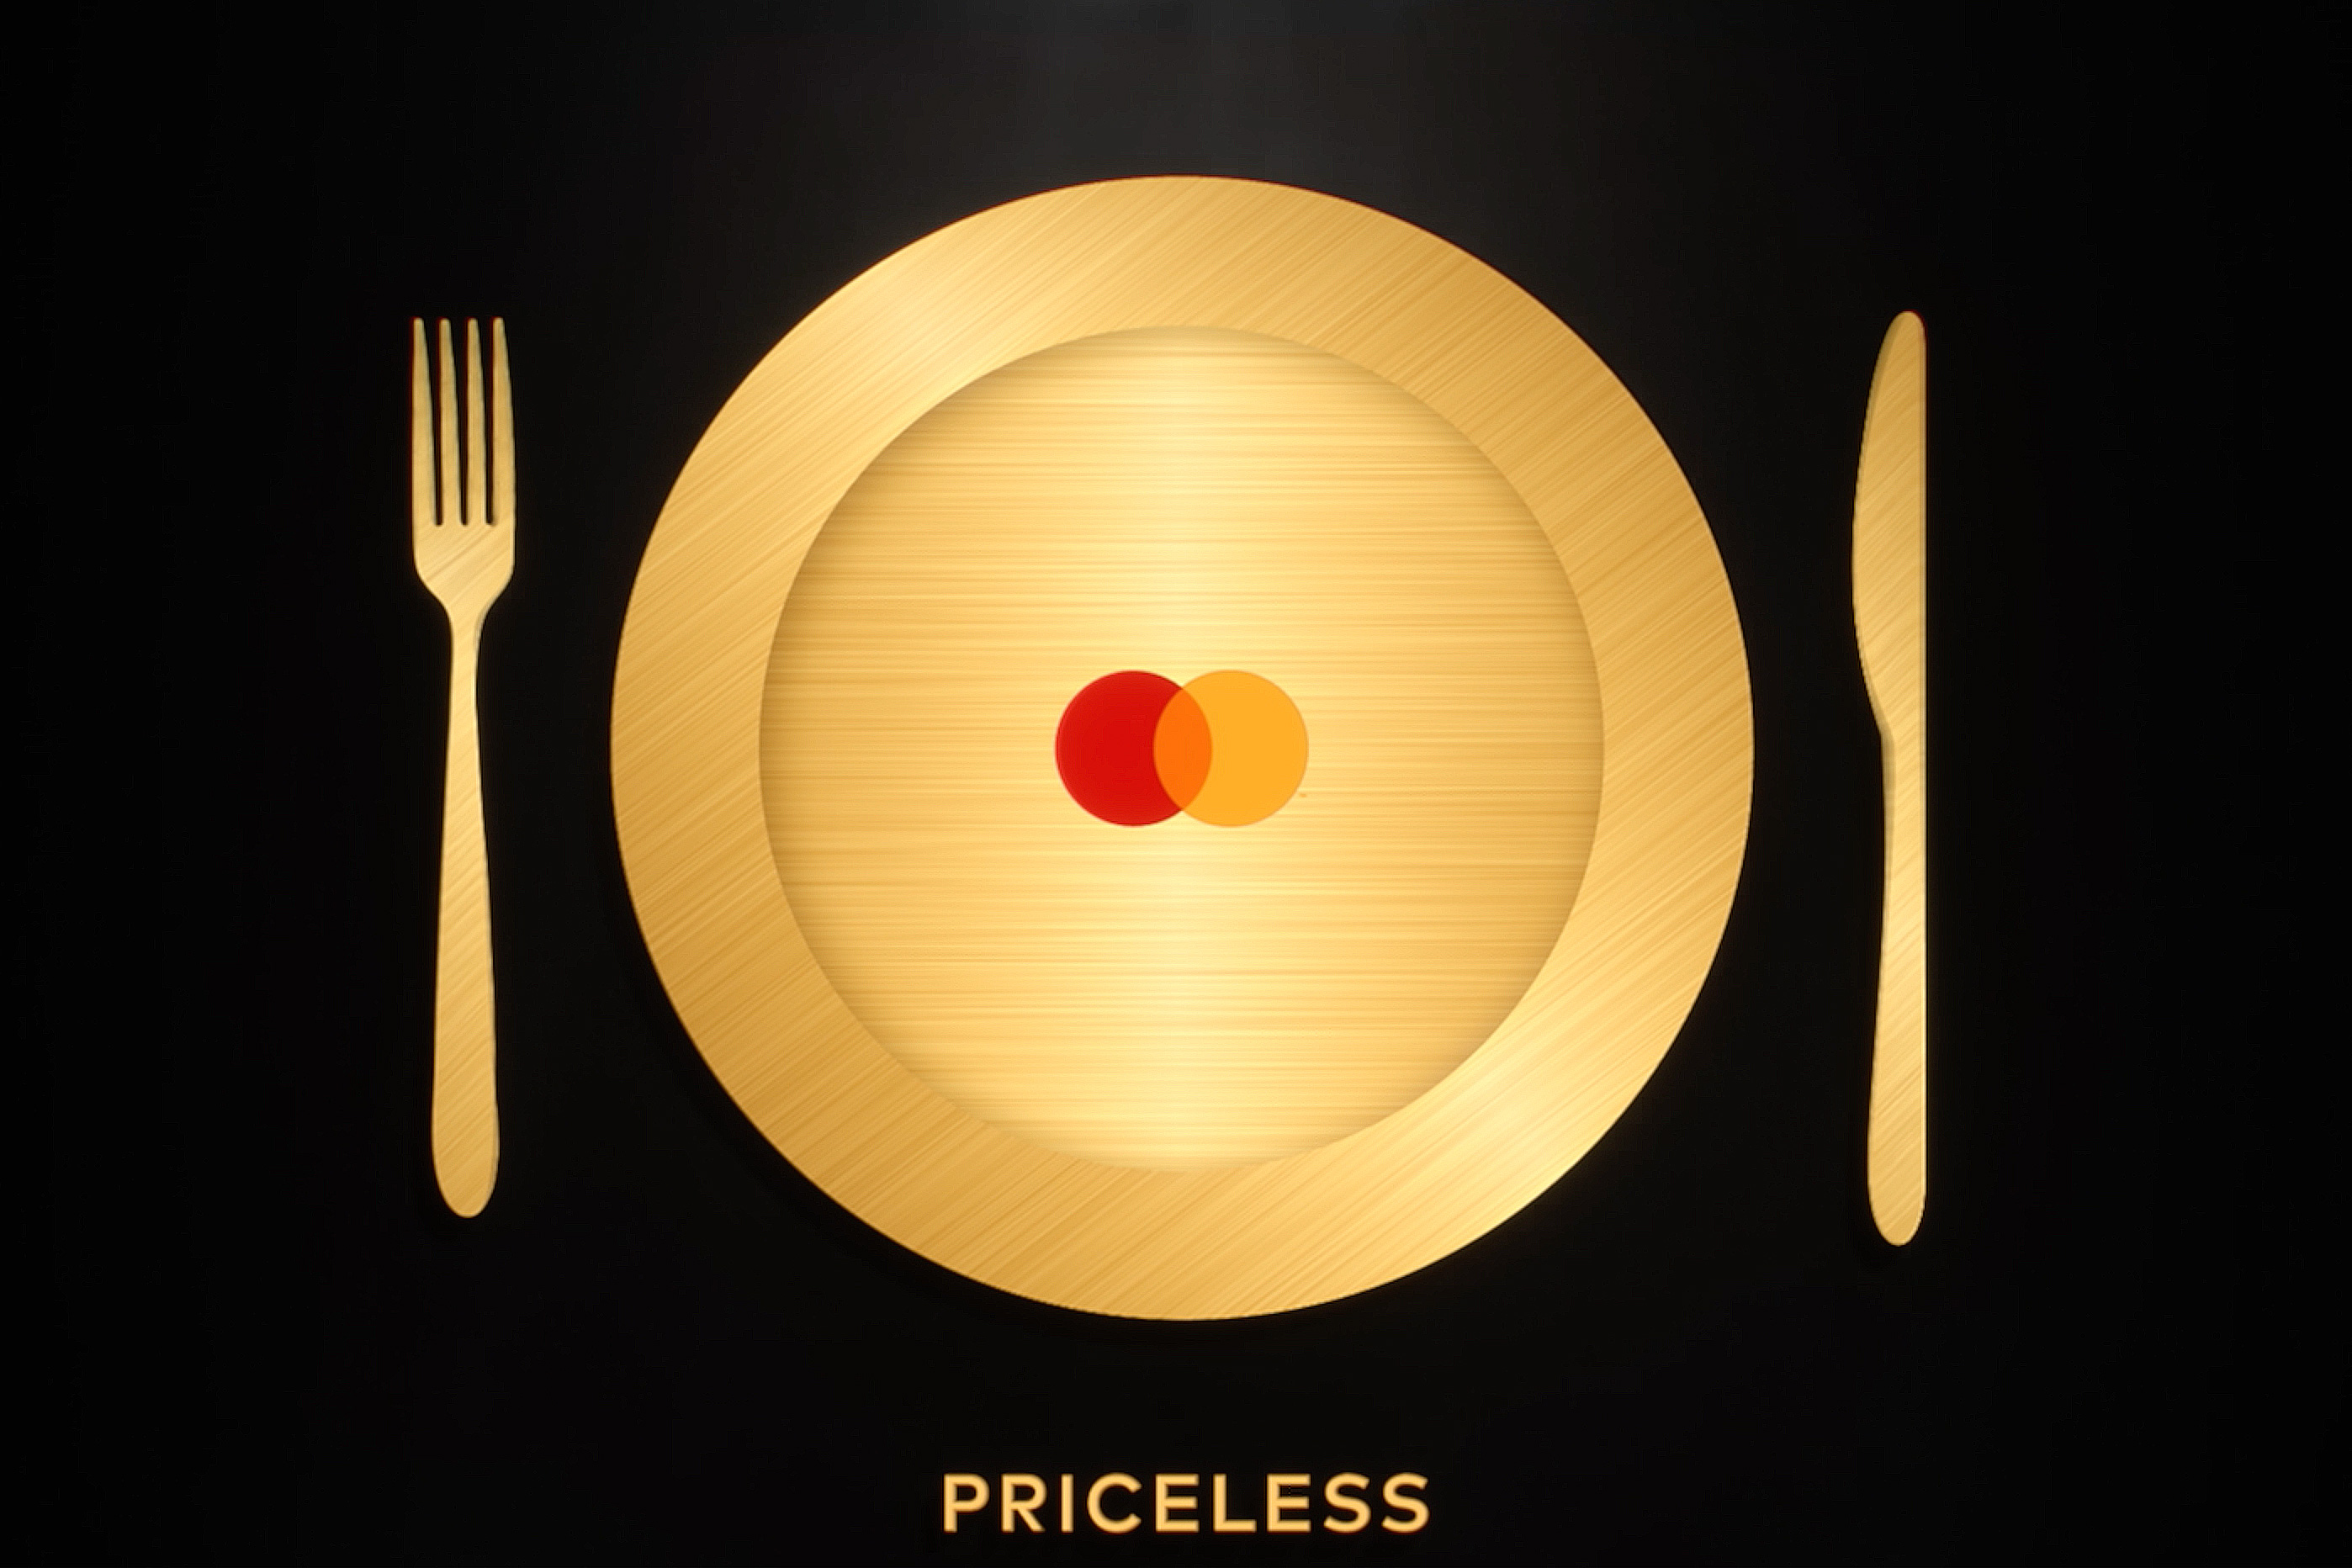 Mastercard recreates 'Priceless' restaurants from around the world in immaculate detail